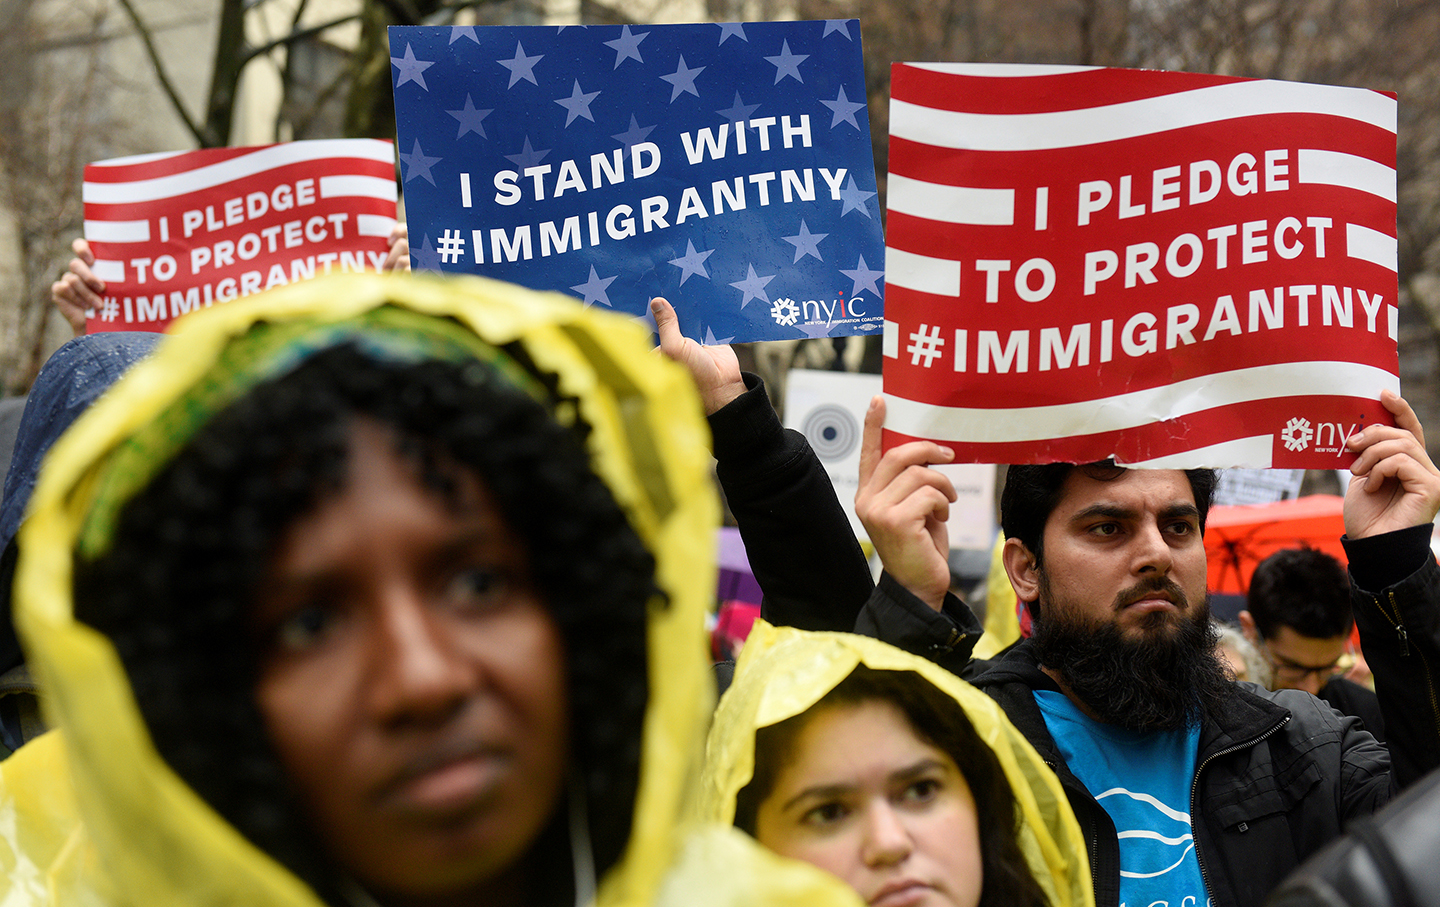 People hold up signs at an immigration rally